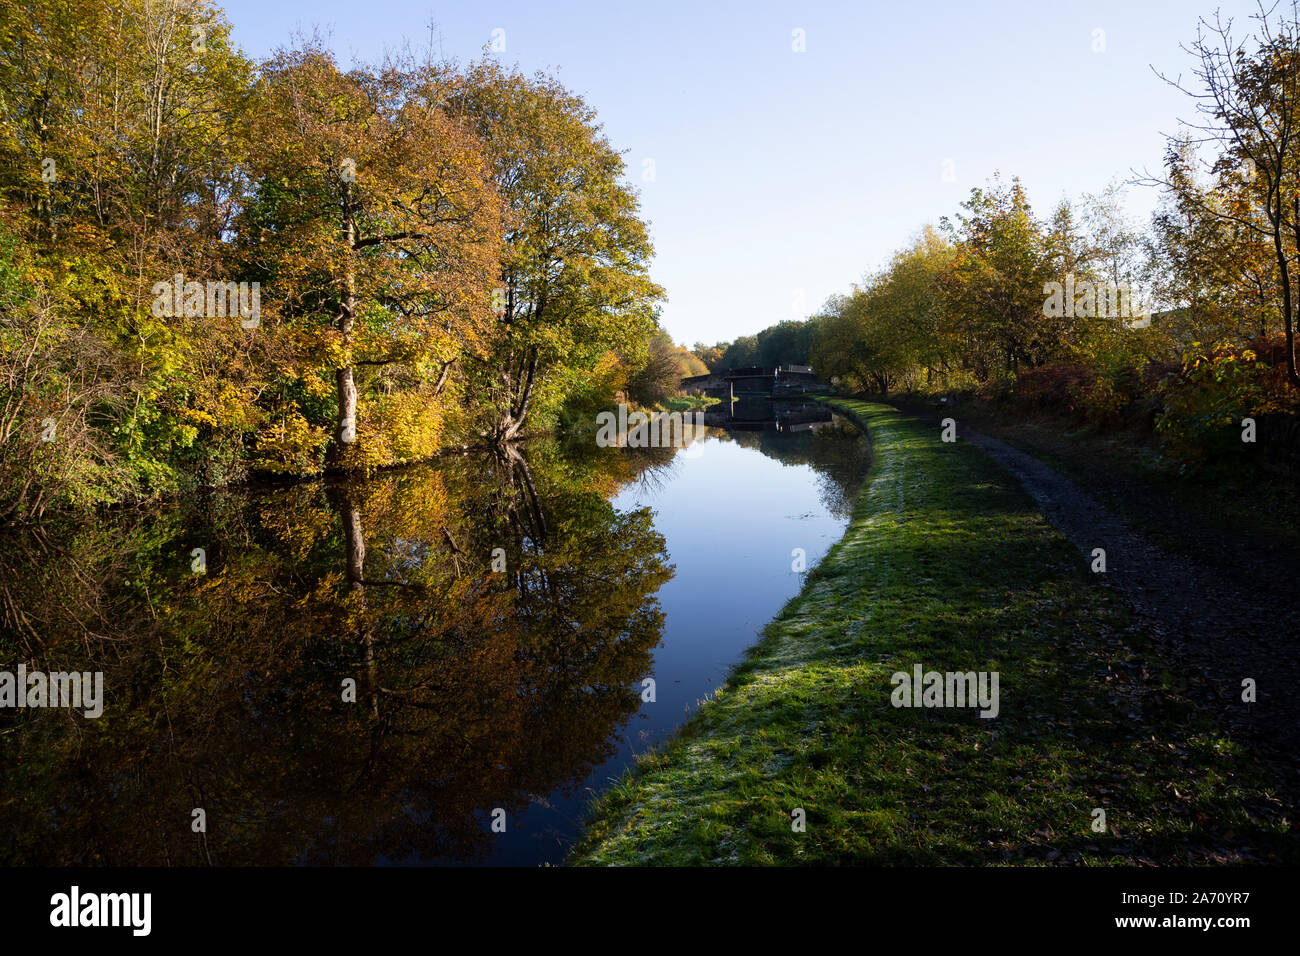 Colourful Autumn trees and foliage alongside the Calder & Hebble canal on a cold calm late October day near Mirfield, West Yorkshire, England Stock Photo